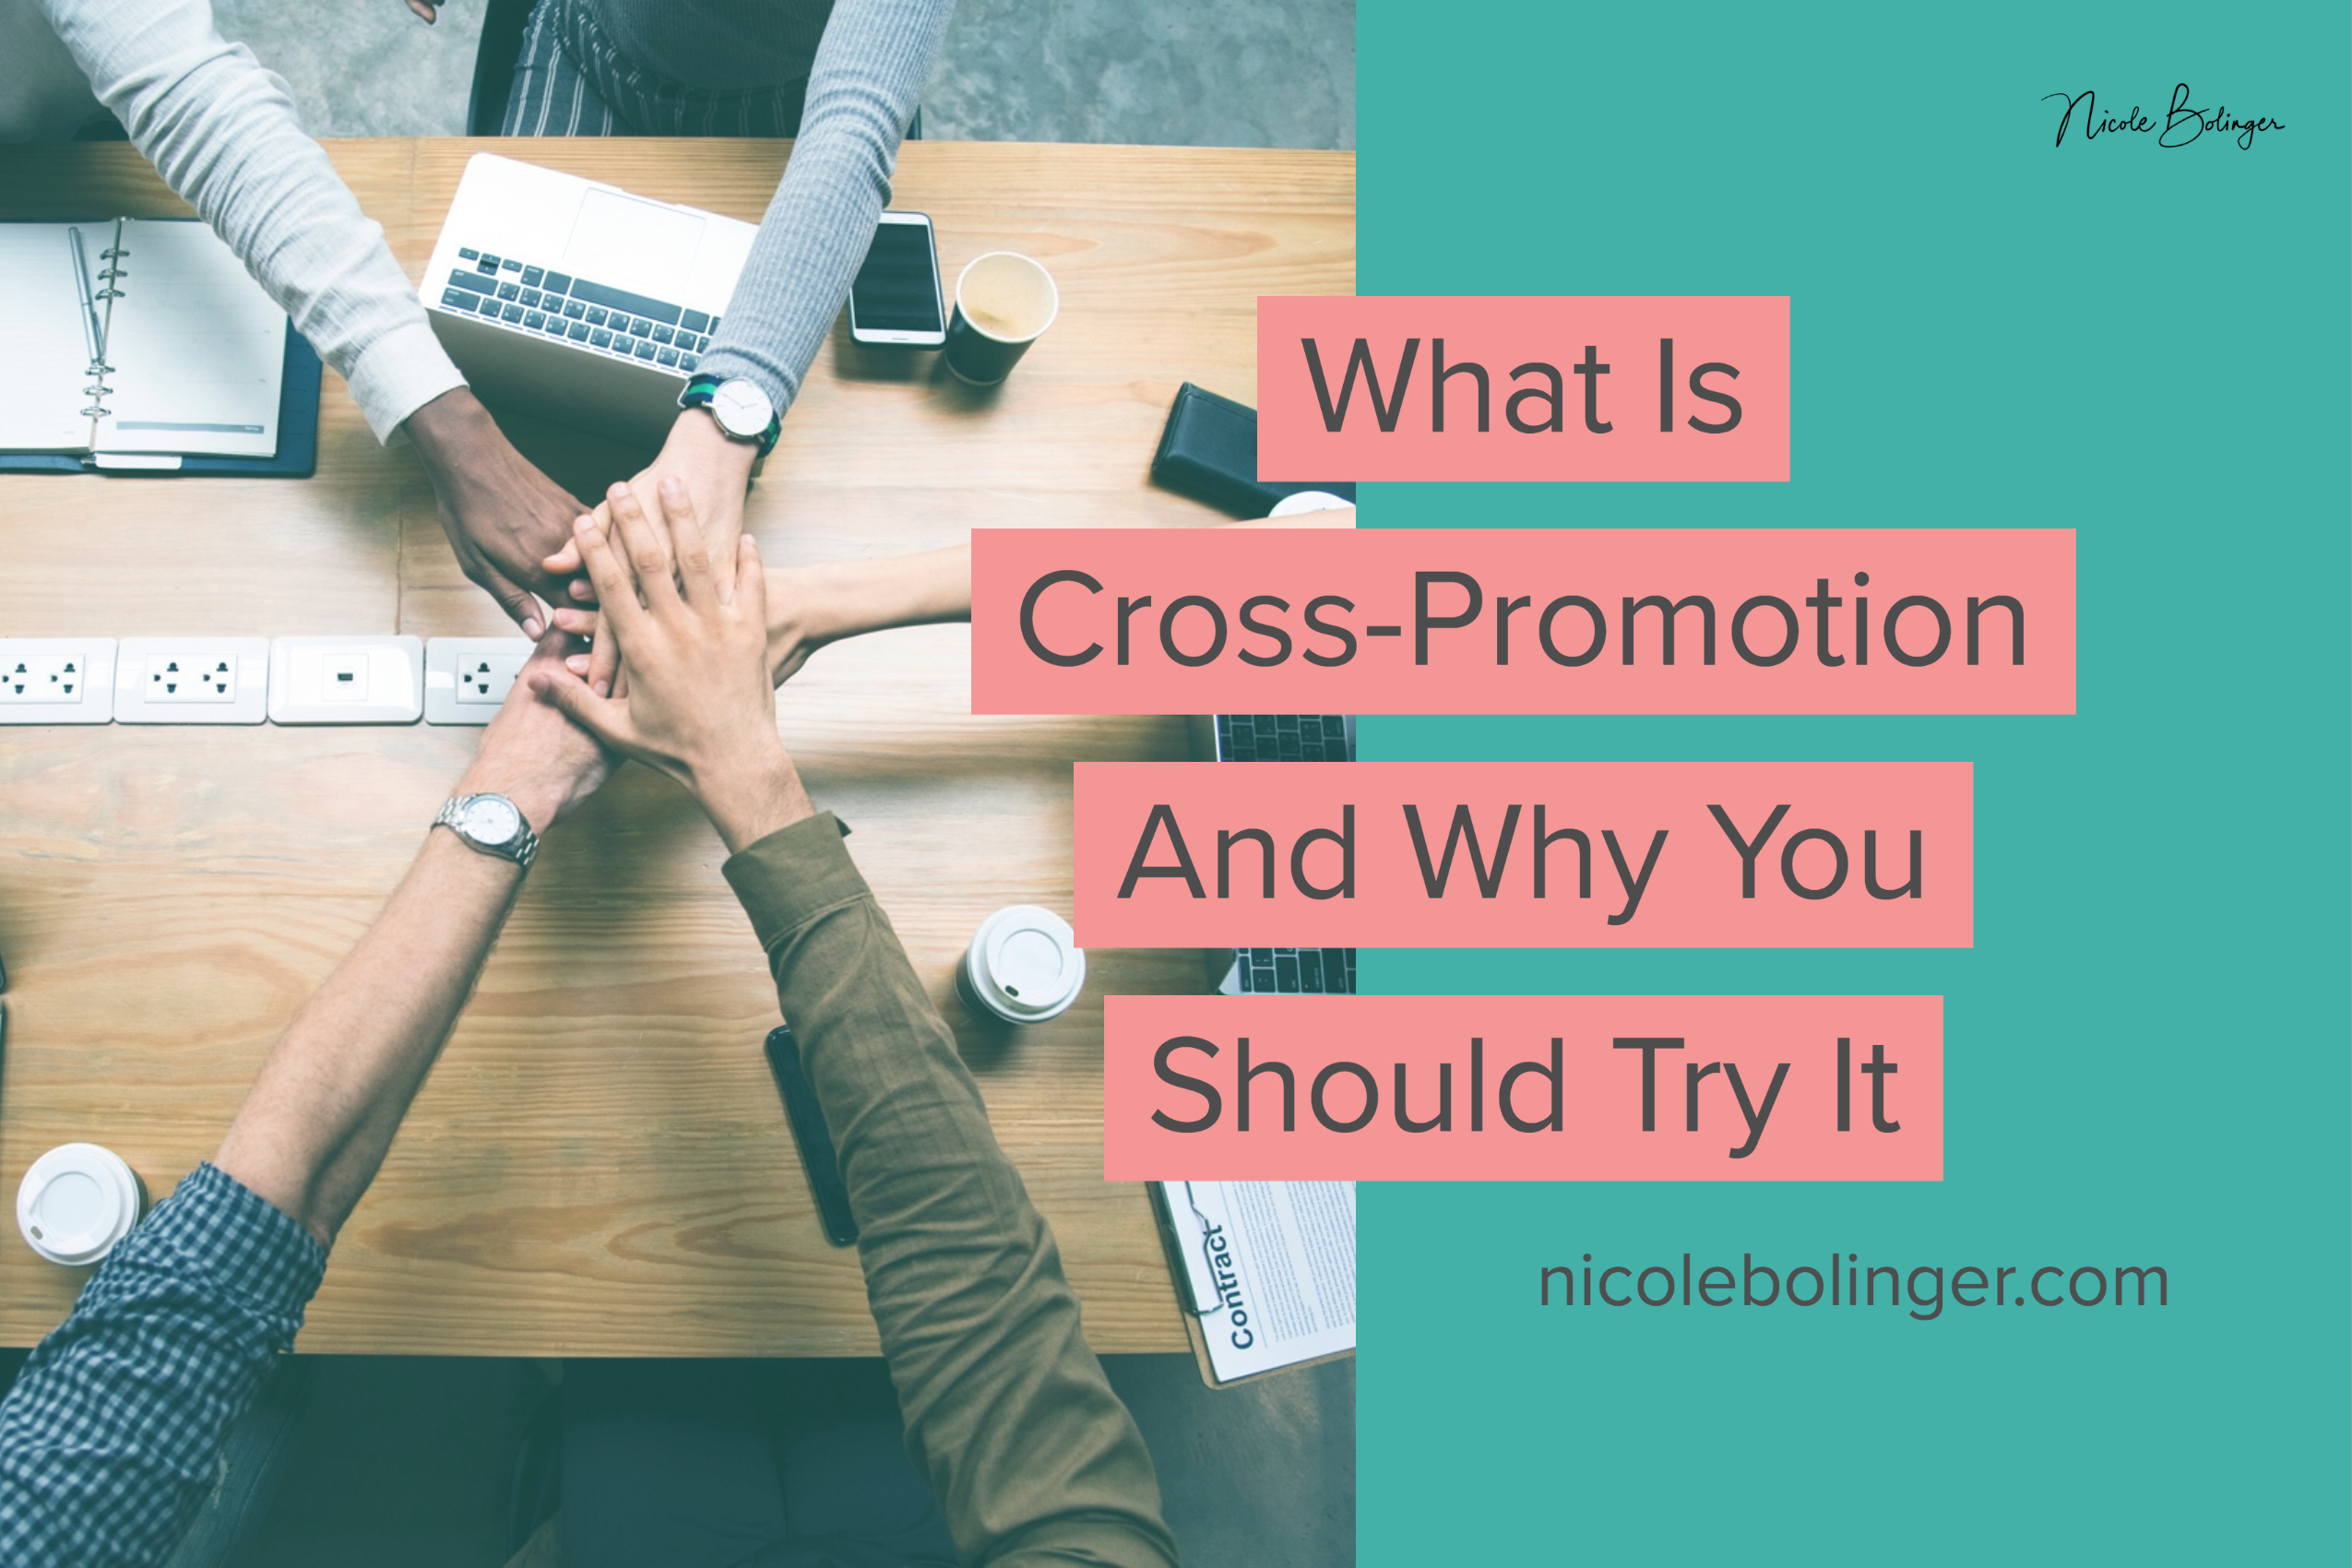 what is cross-promotion